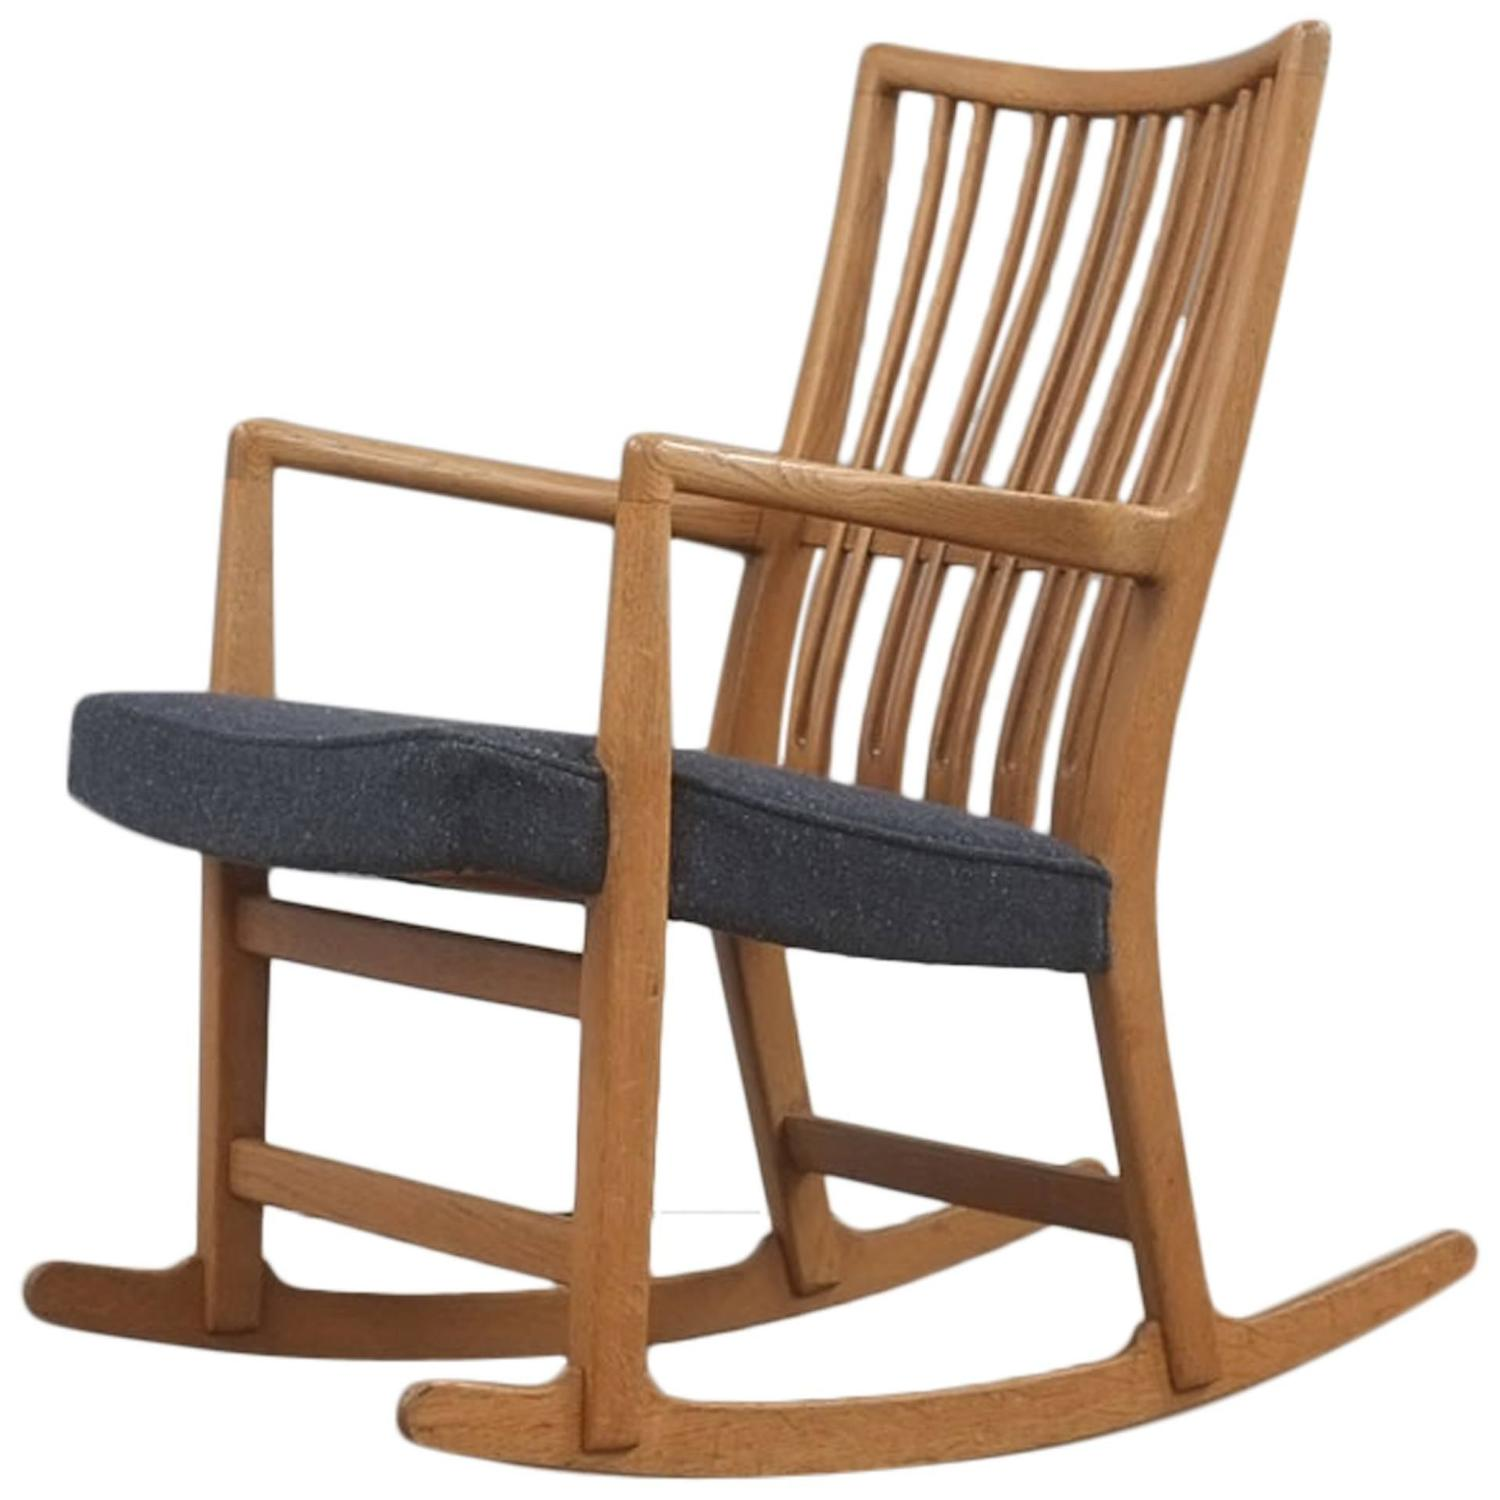 Hans Wegner ML 33 Rocking Chair At 1stdibs. Full resolution‎  portraiture, nominally Width 1500 Height 1500 pixels, portraiture with #6B462D.